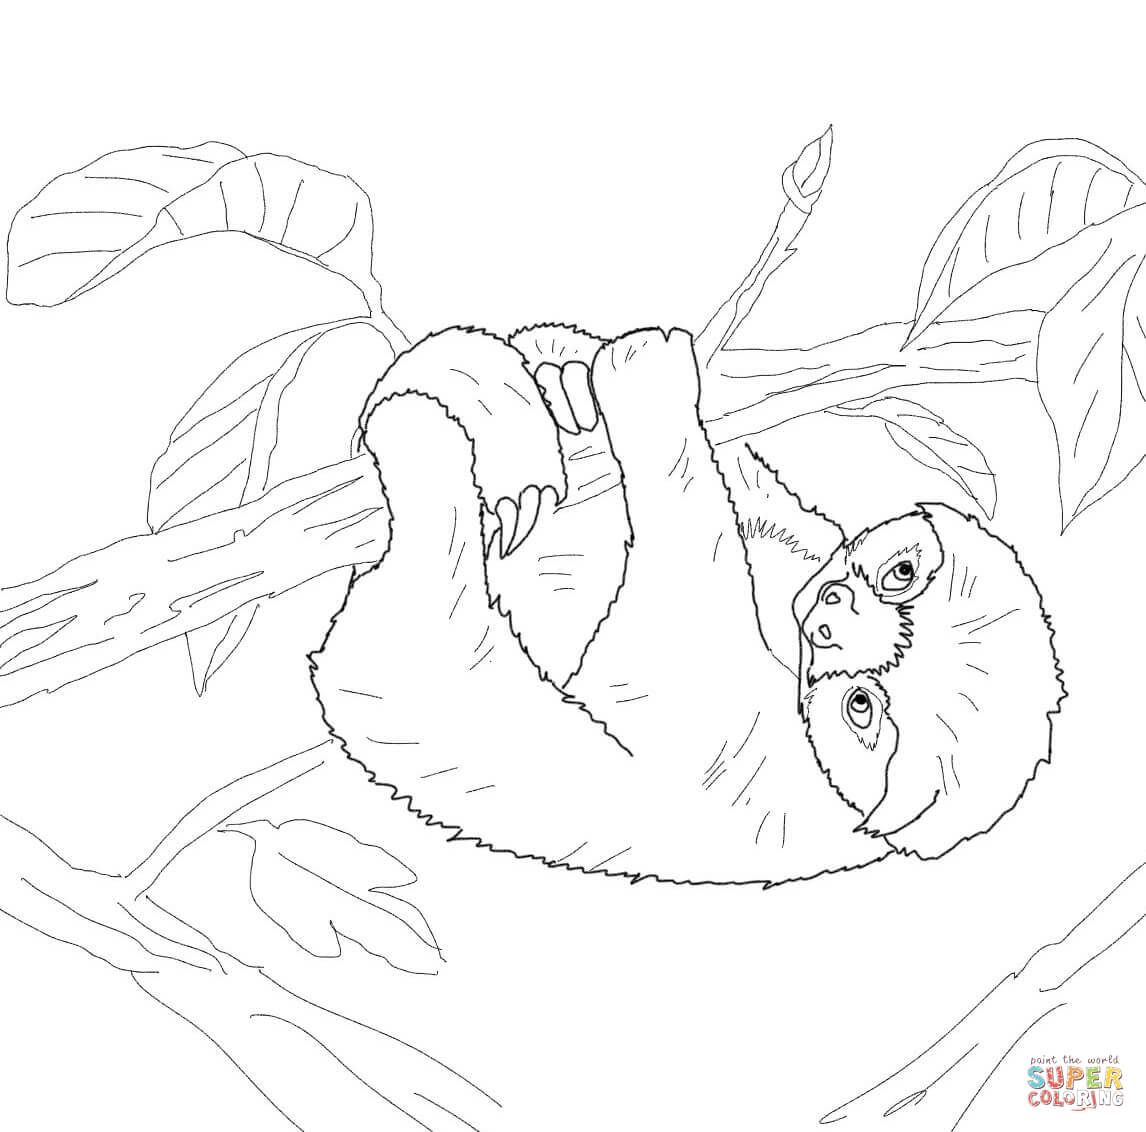 Baby Sloth Coloring Page Free Printable Coloring Pages Coloring Pages Animal Coloring Pages Free Coloring Pages